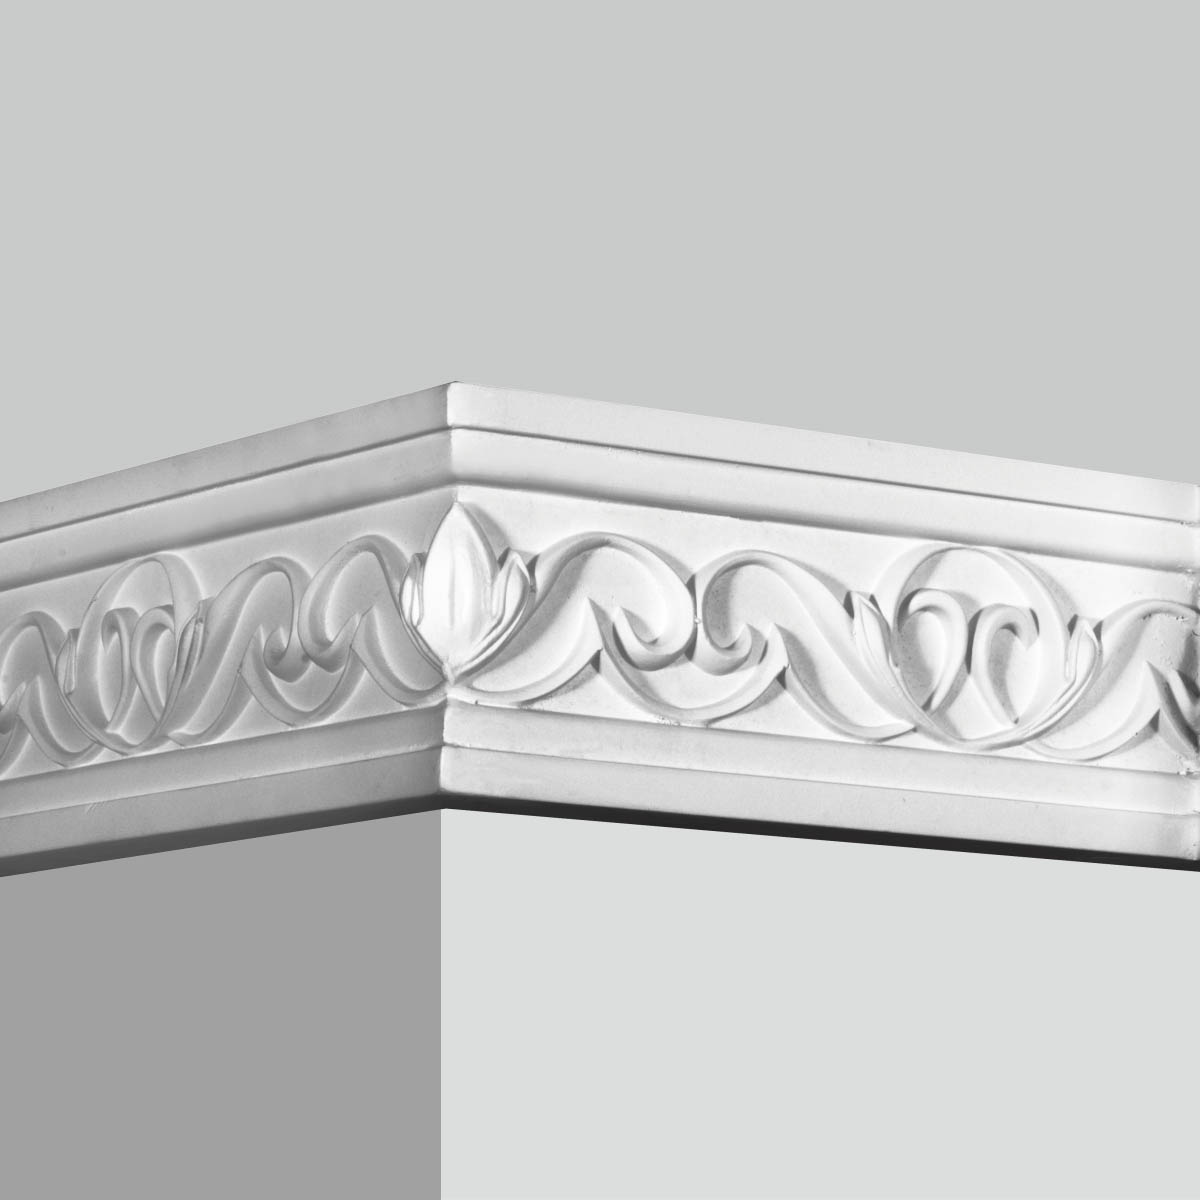 Polyurethane decorative frieze molding